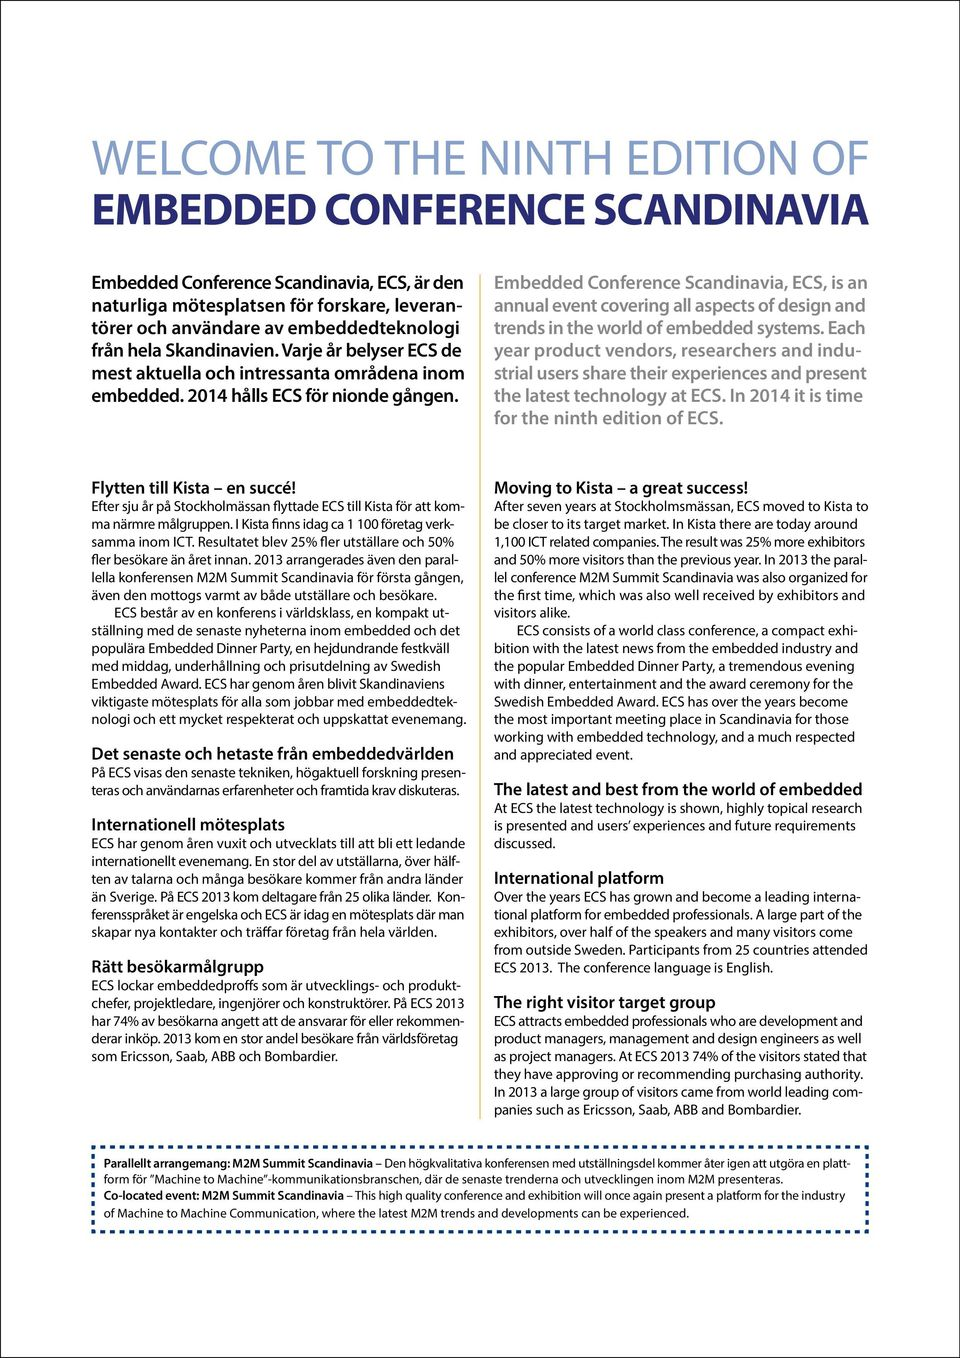 Embedded Conference Scandinavia, ECS, is an annual event covering all aspects of design and trends in the world of embedded systems.